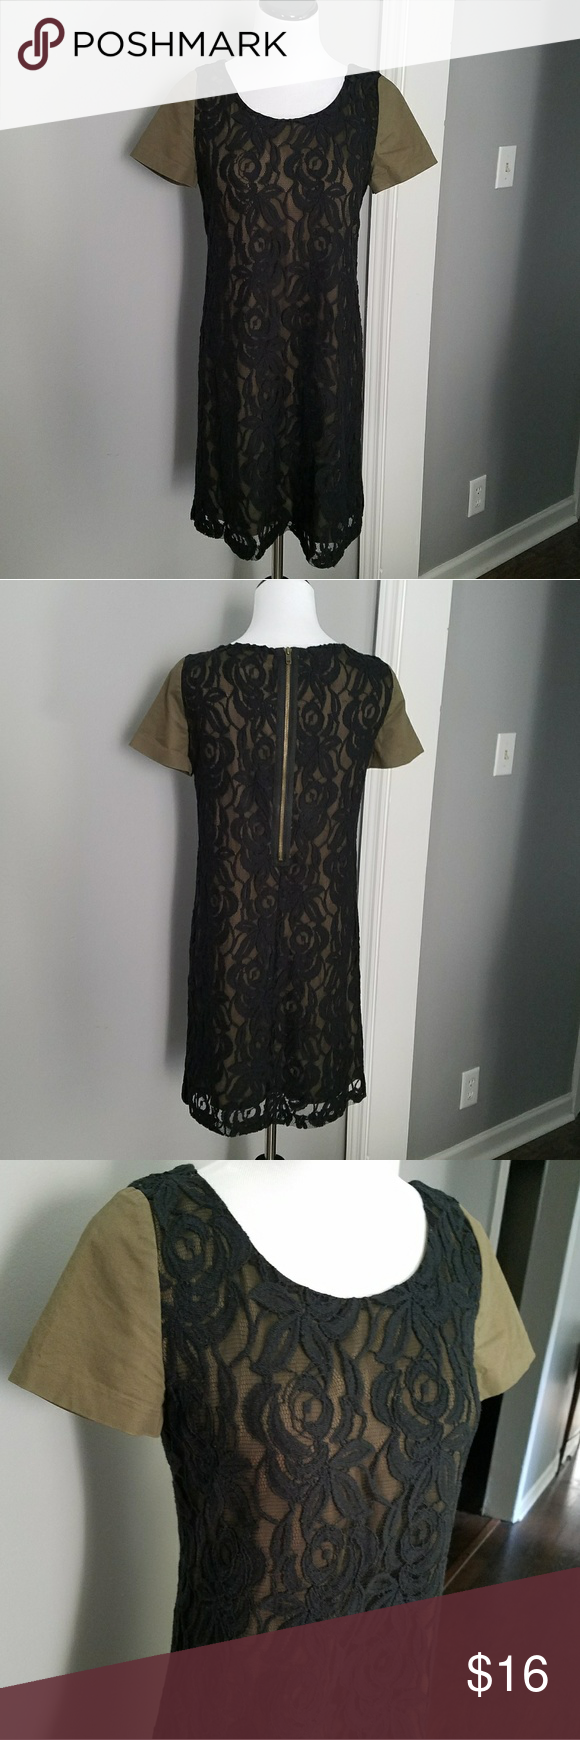 Green dress with lace overlay  UK Style French Connection Lace Shift Dress Military green color